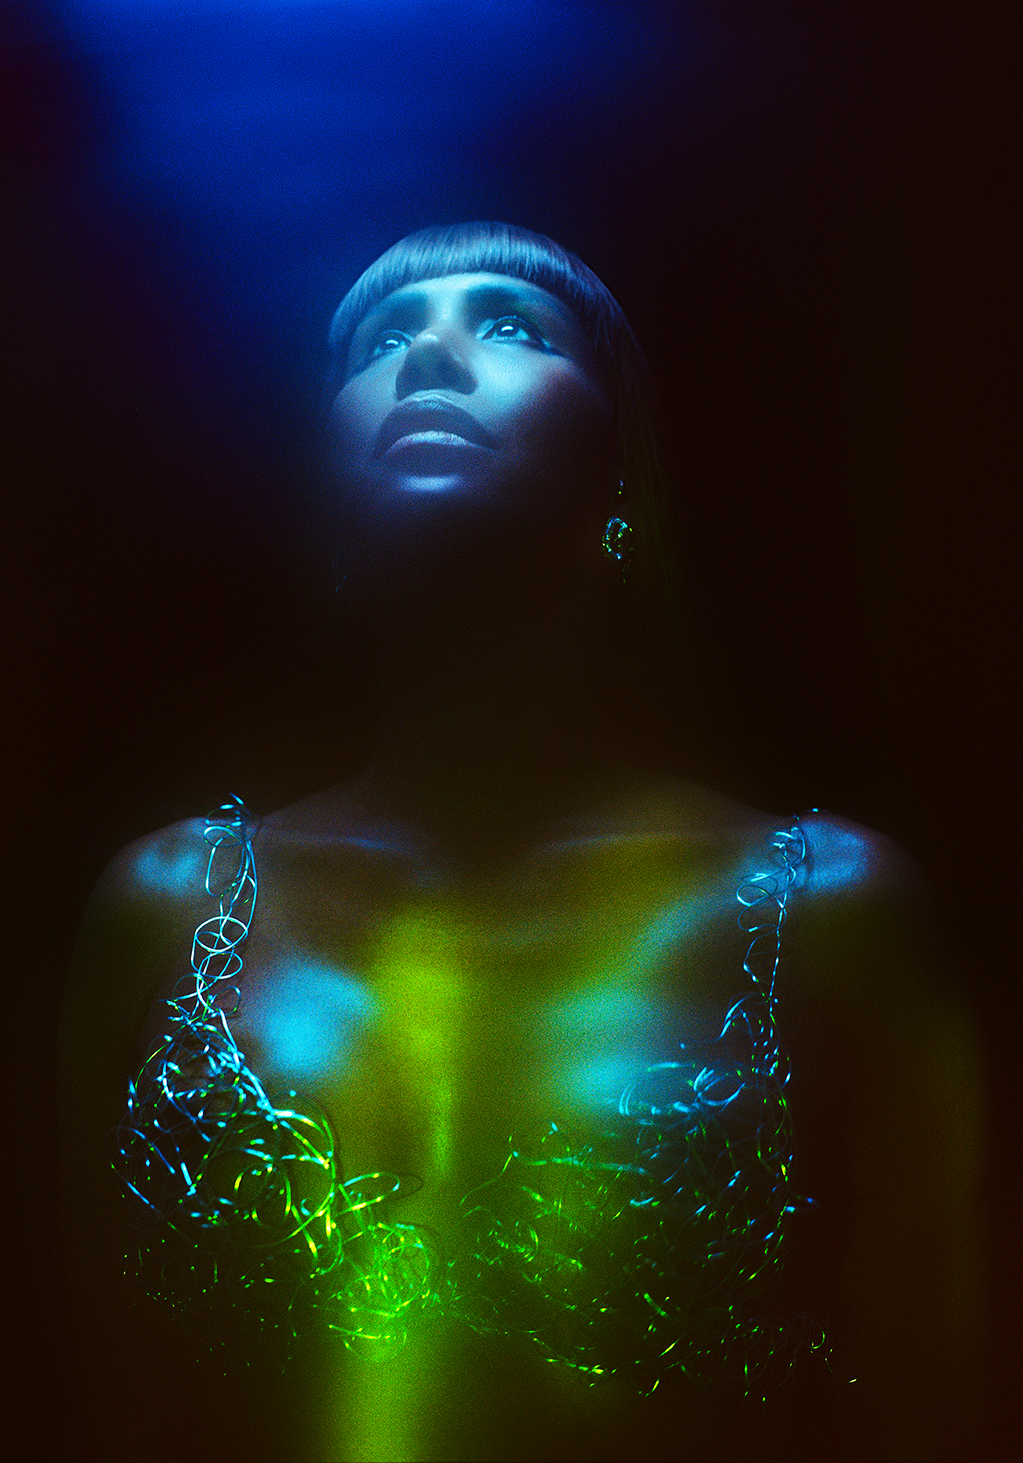 Honey Dijon photographed by Matt Lambert for CR Fashion Book